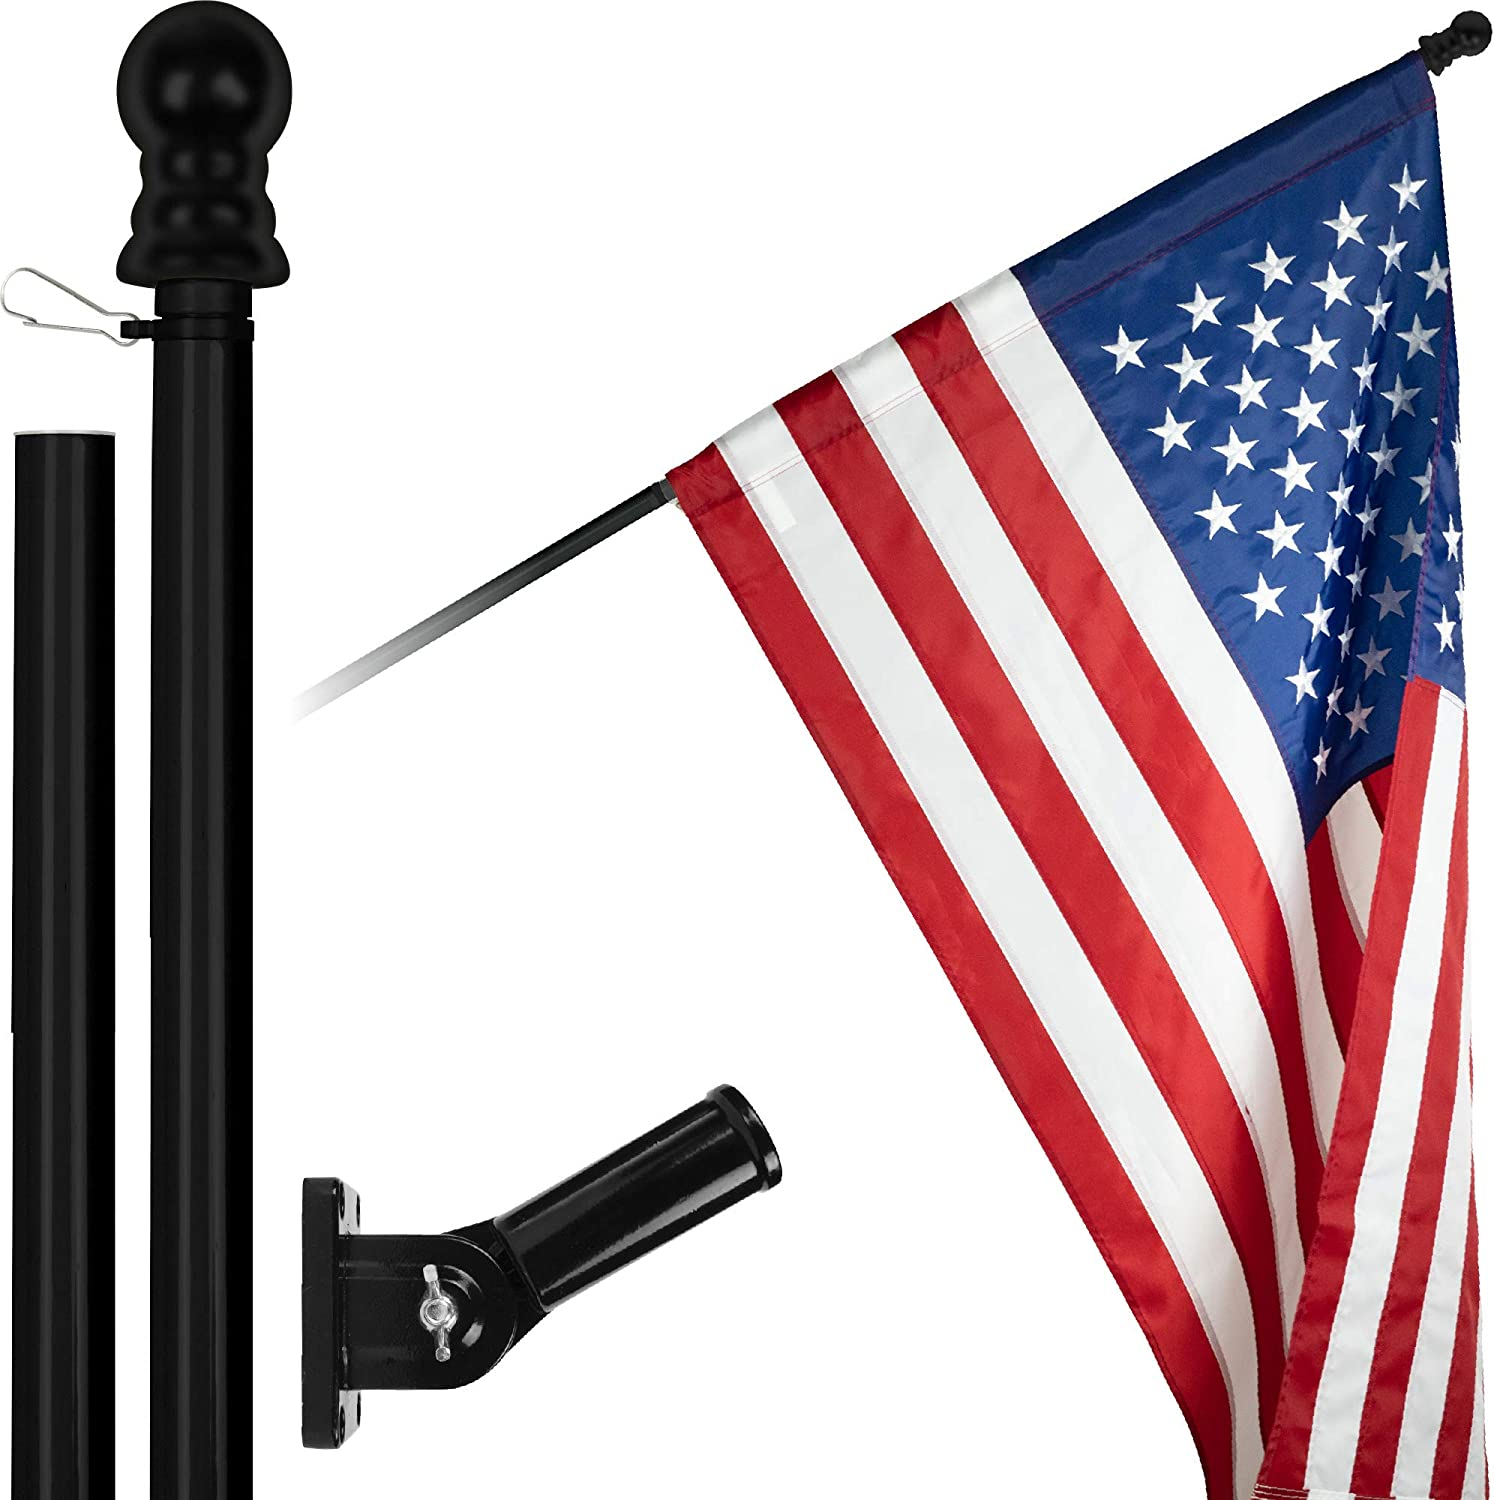 Spasm price G128 - OFFicial store 6 Feet Tangle Free Black Fla Flagpole Spinning American